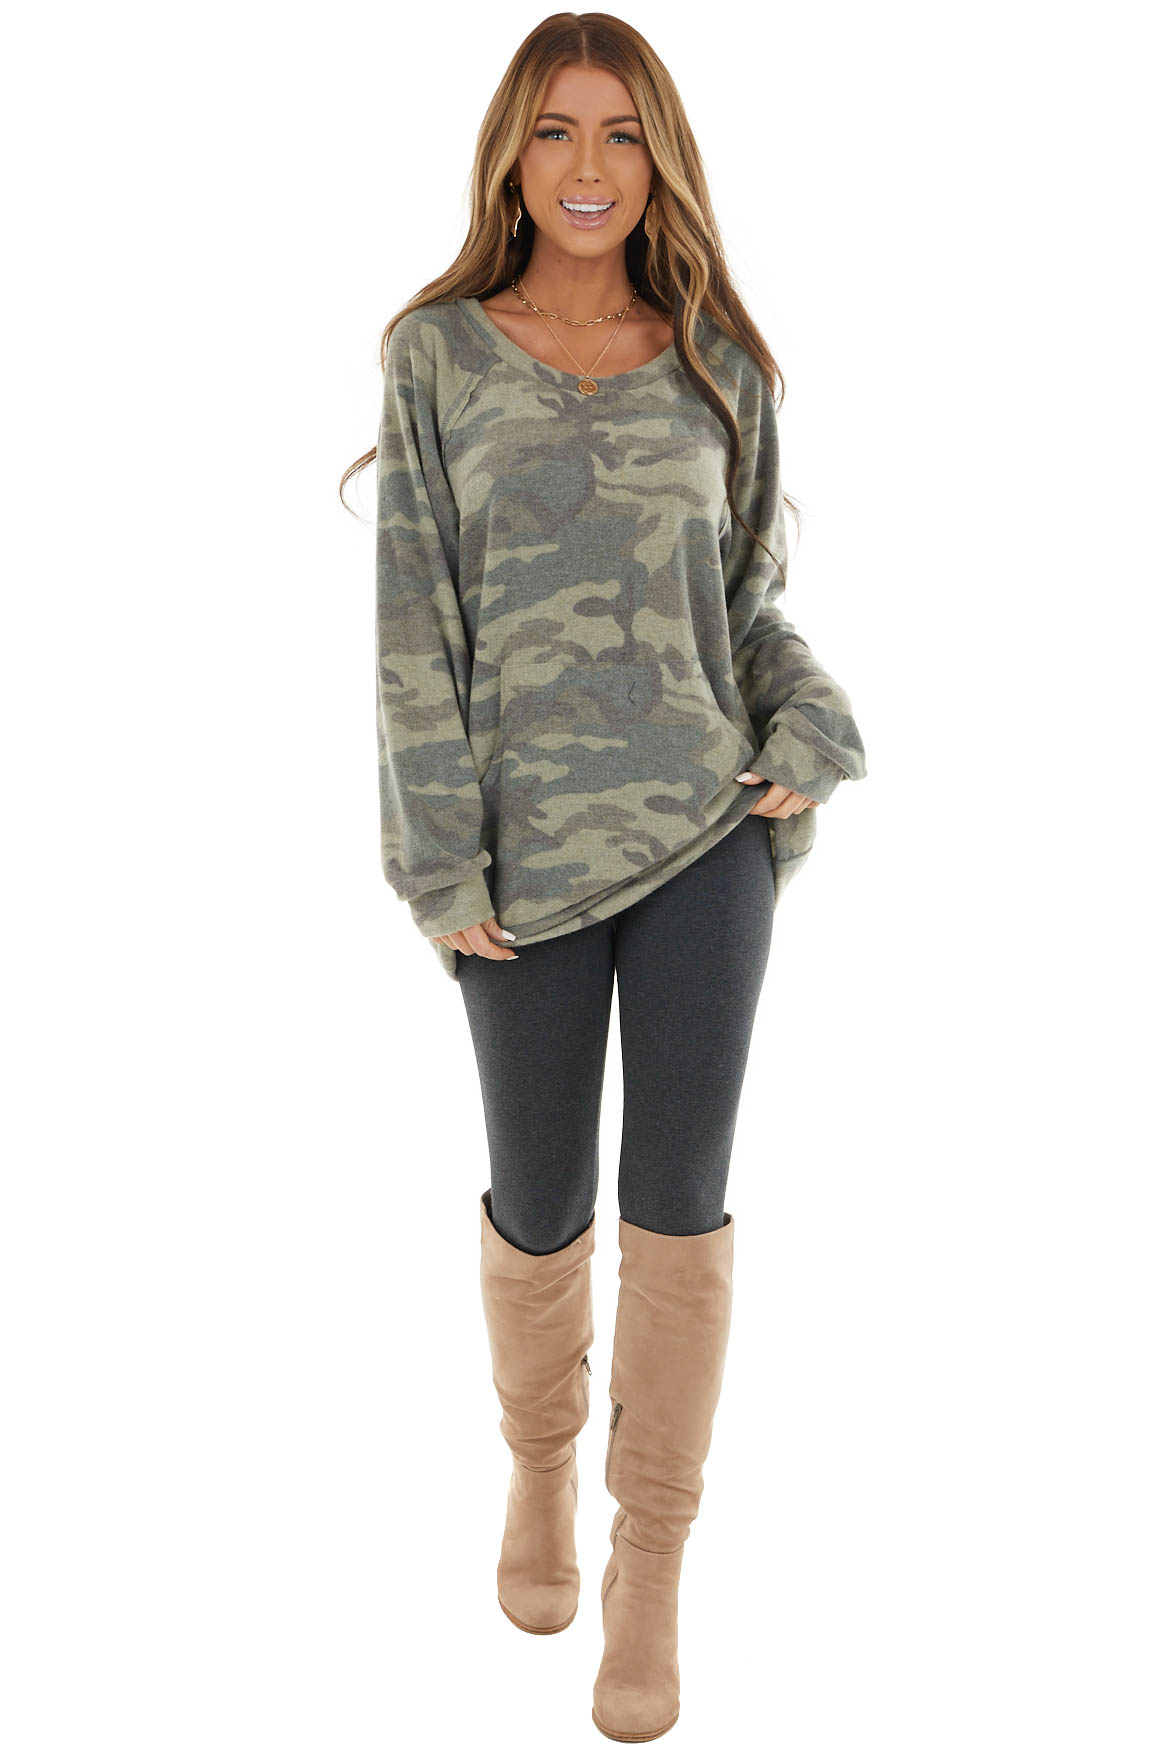 Dark Sage Camo Long Sleeve Knit Top with Kangaroo Pocket